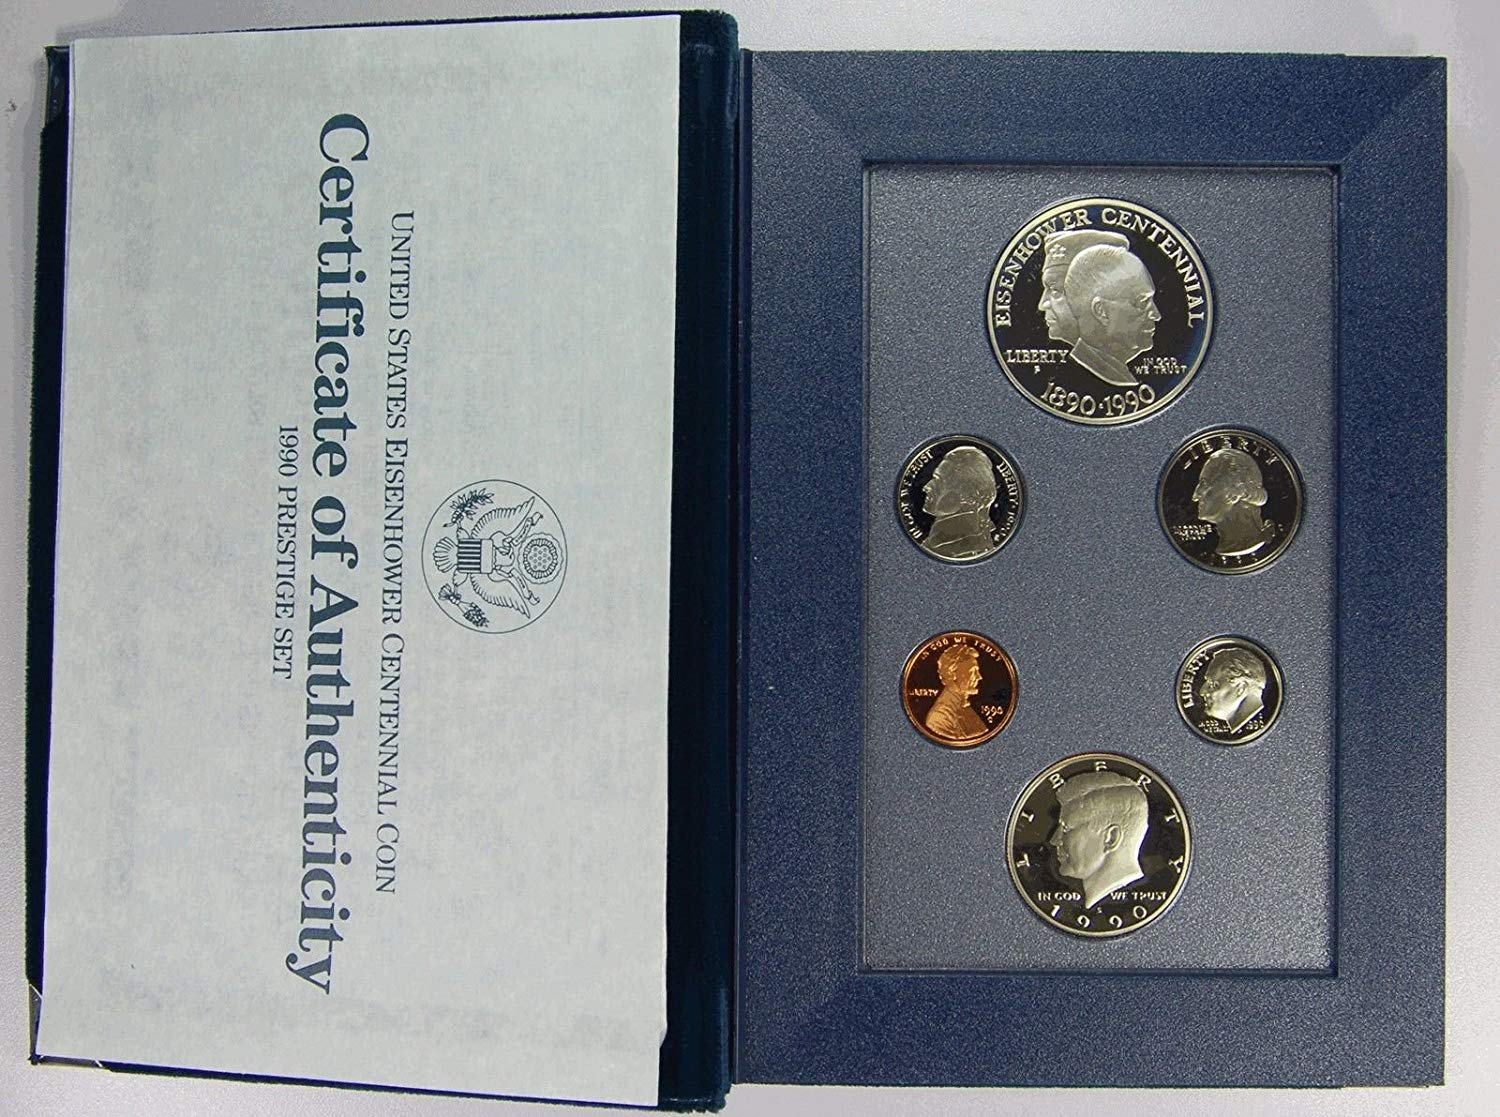 United States Mint 1990-S Proof Set 5 Coins in Original Government Packaging